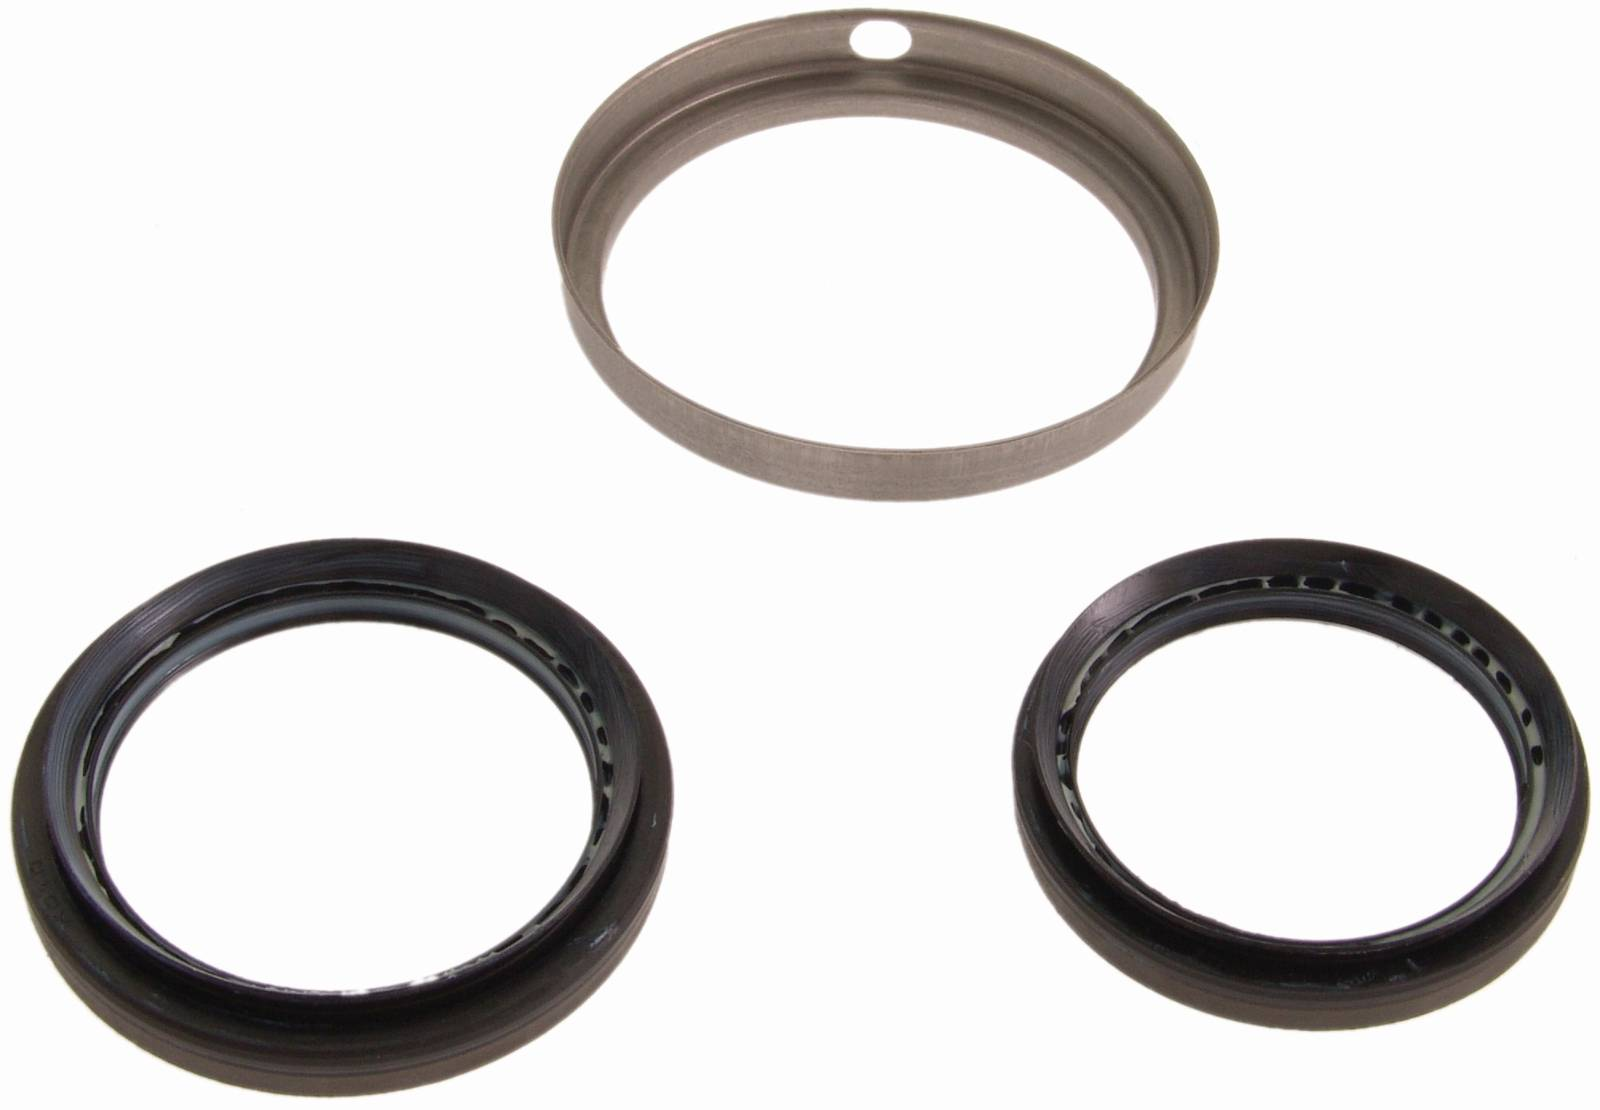 OIL SEAL HUB SET For Toyota COROLLA AE10#//CE10#//EE10# 1991-2002 OEM 04422-1207